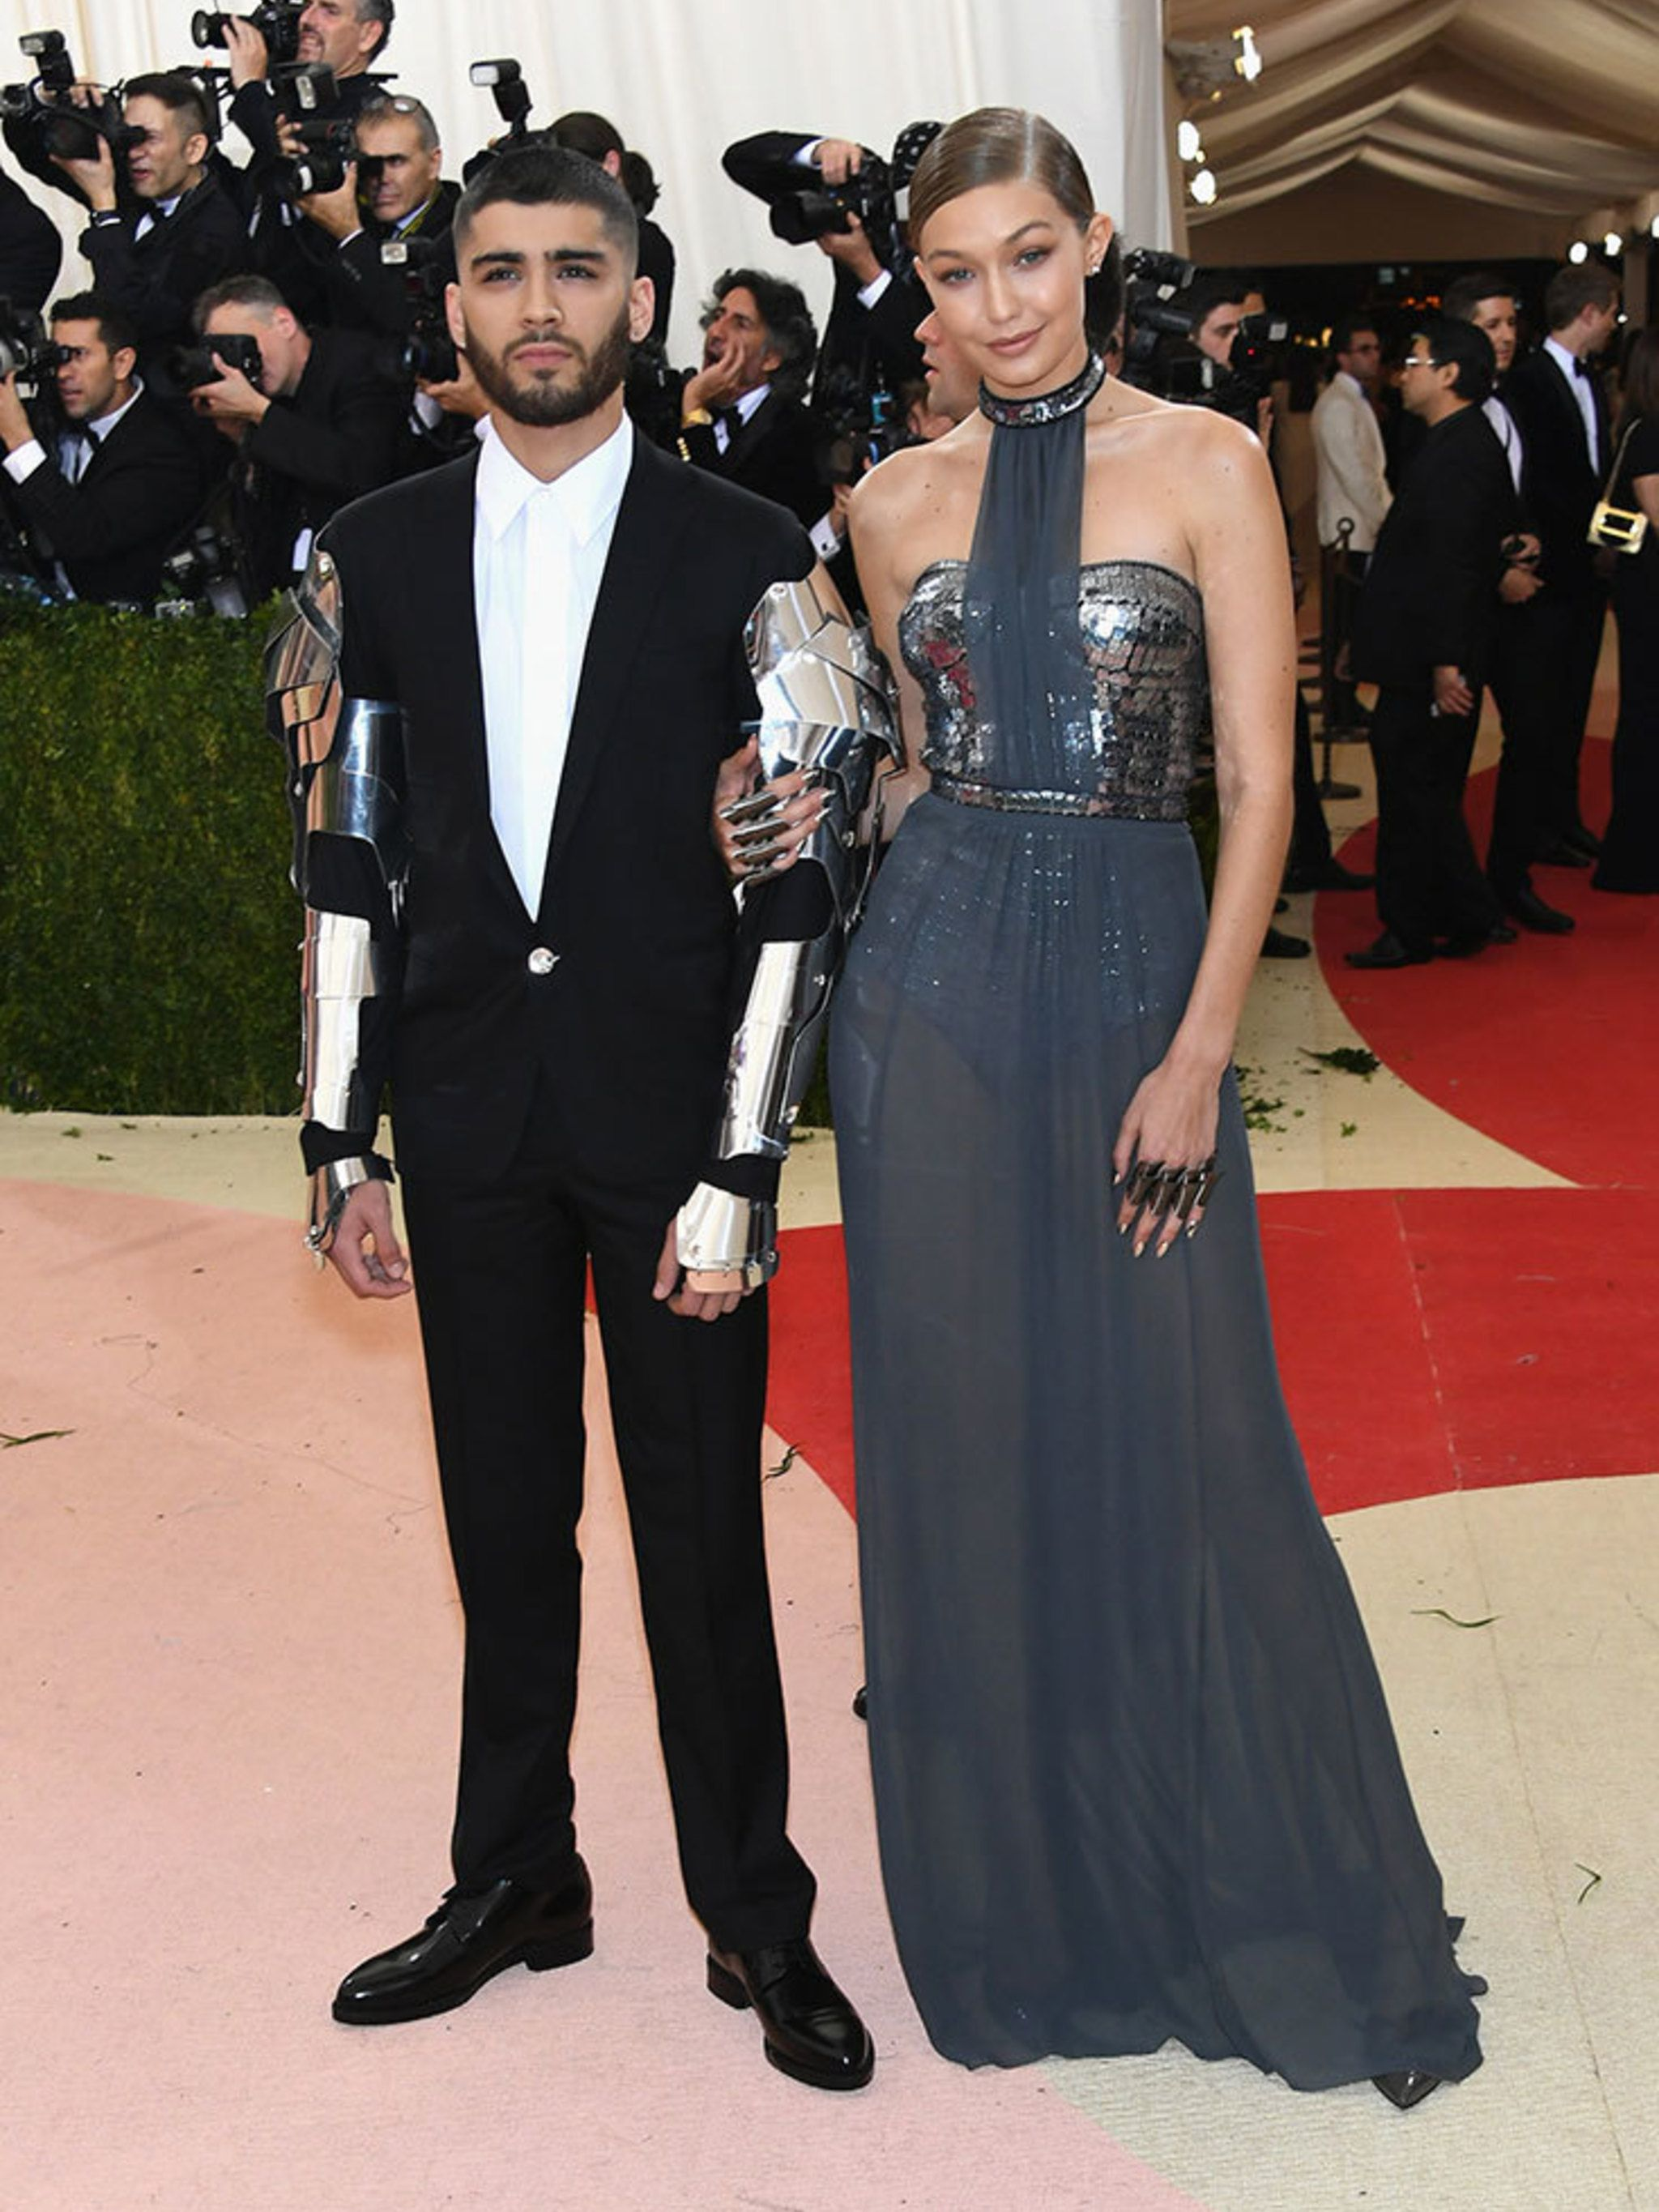 Met Gala 2016 Every Unbelievable Dress From The Red Carpet